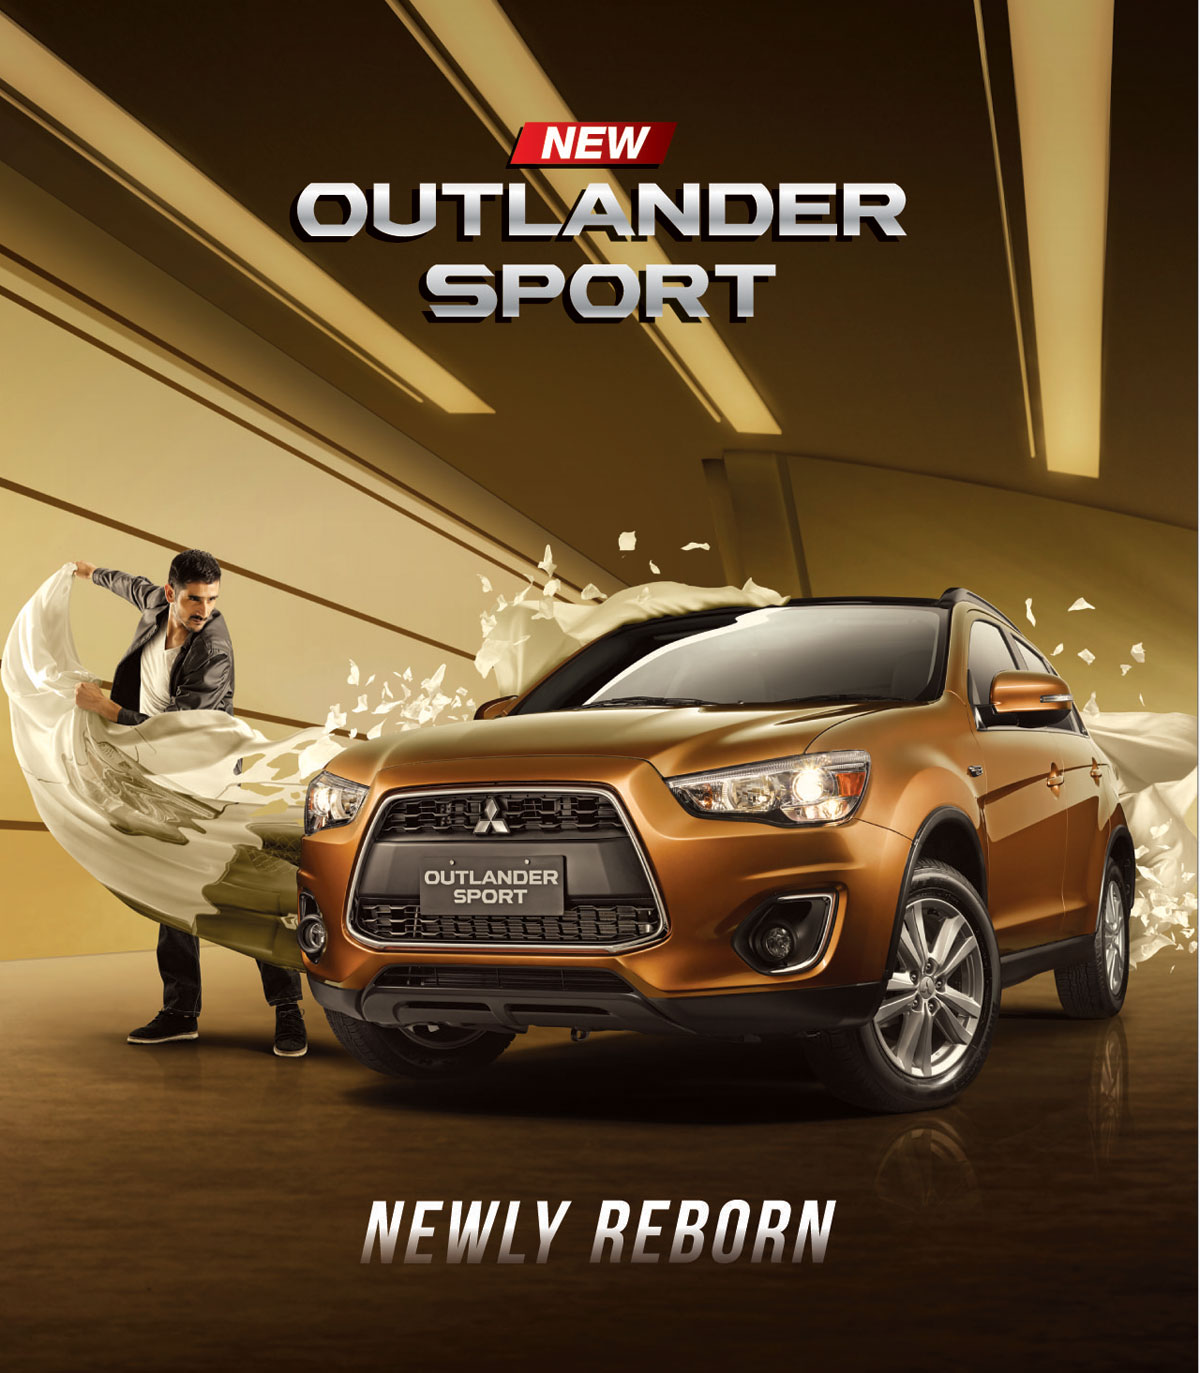 new mitsubishi outlander sport campaign car head lamp velg racing front bumper panoramic view interior cabin exterior view